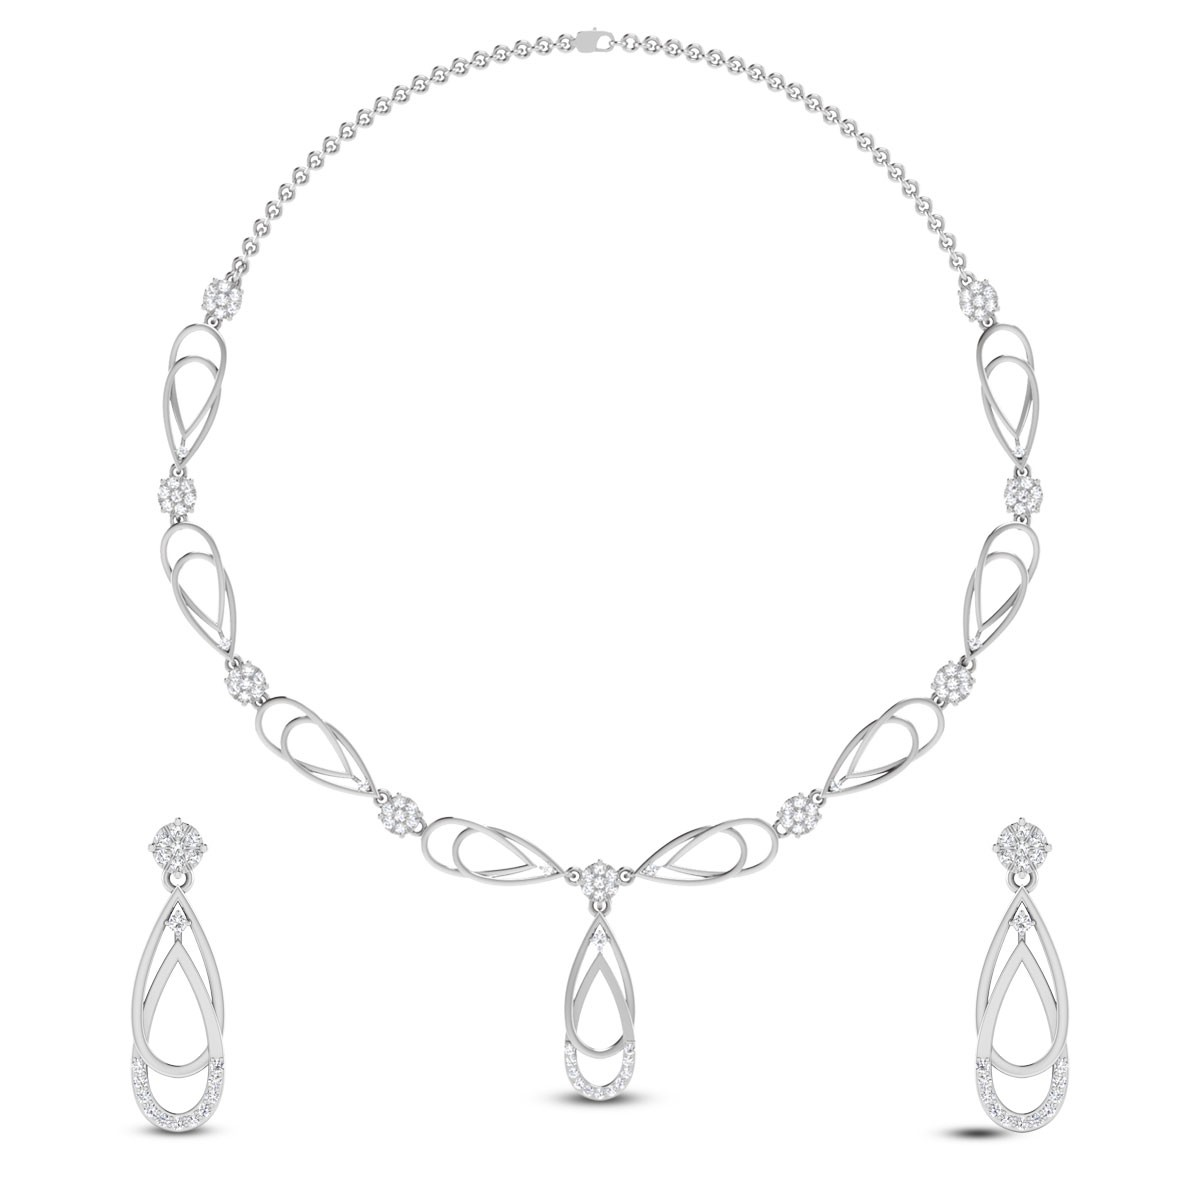 Chameli Diamond Necklace Set